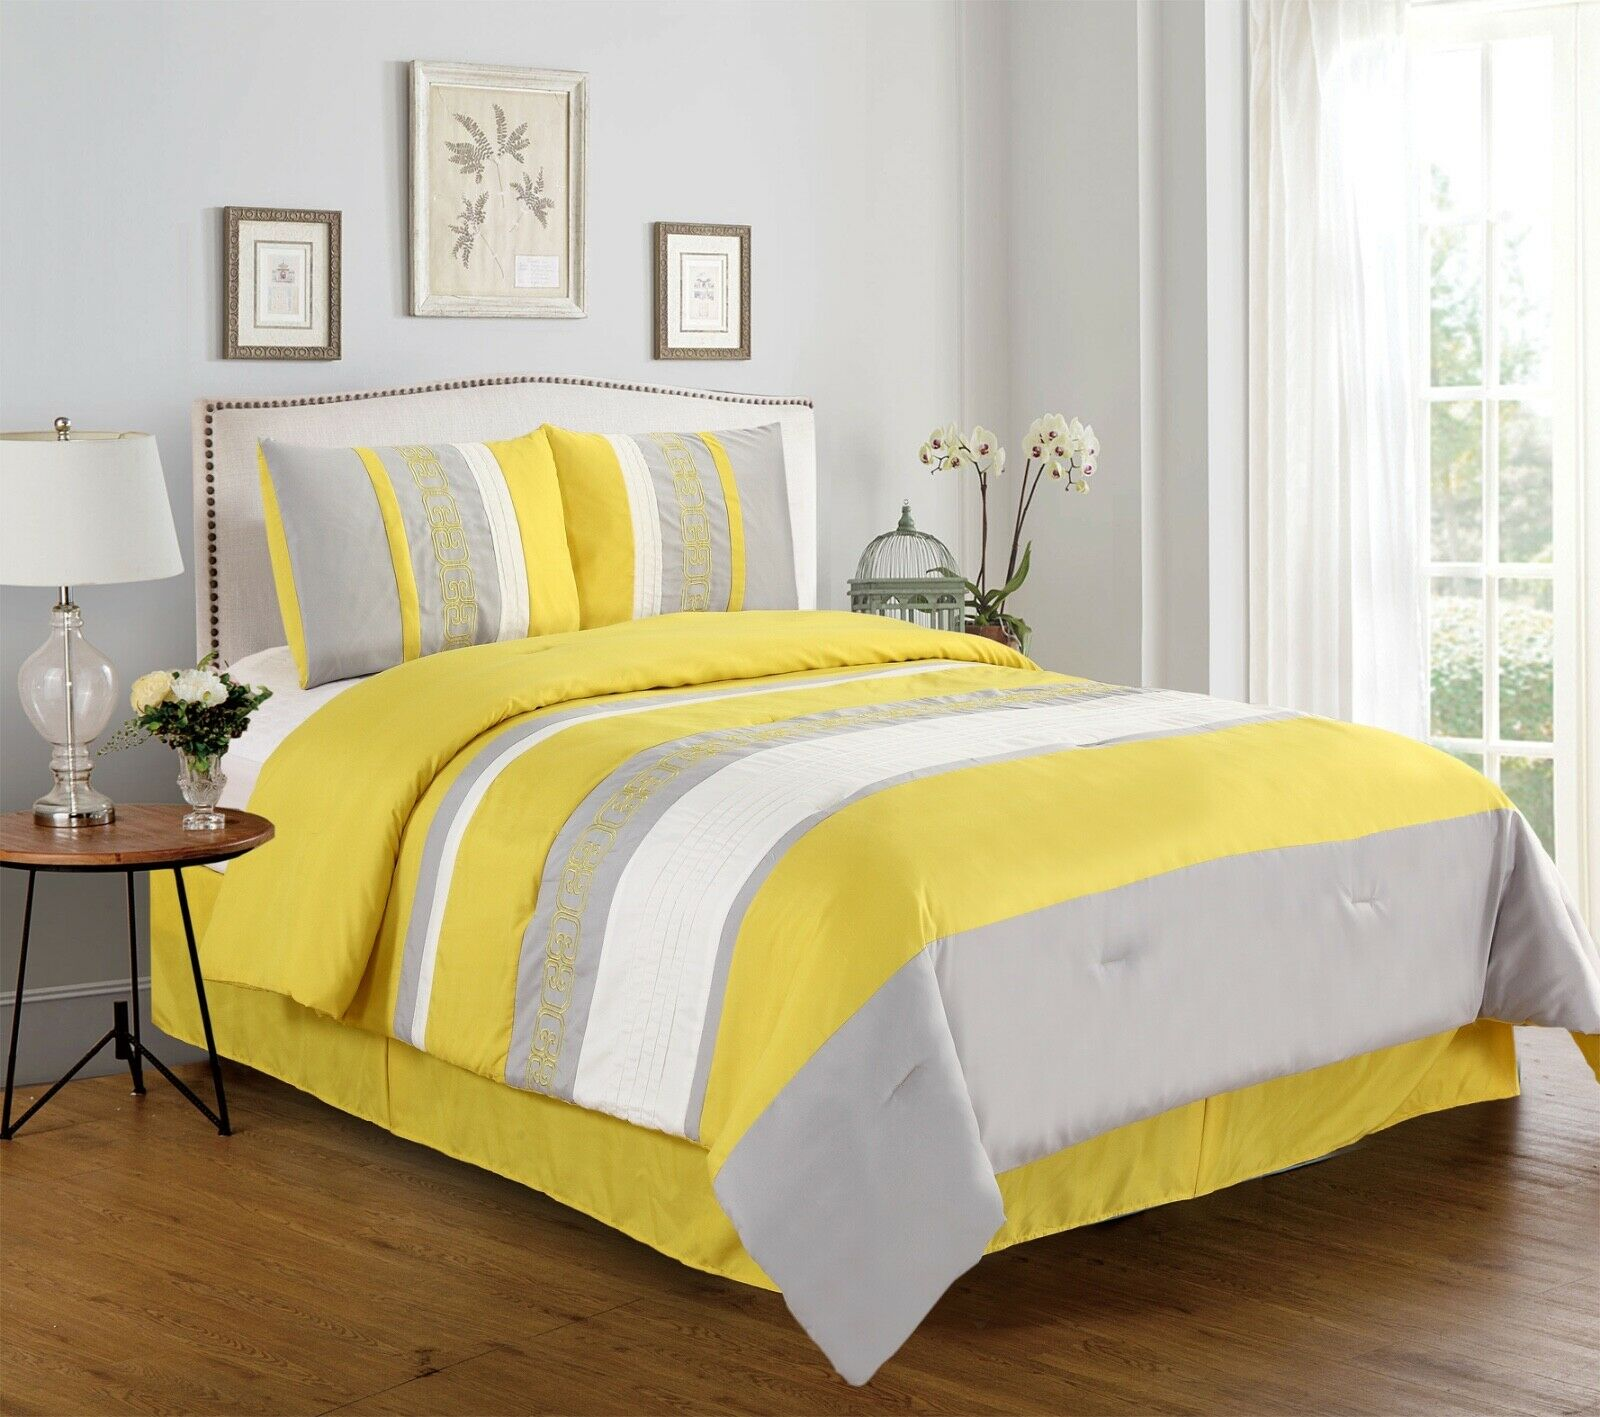 Manar 4-Piece Embroidered Comforter Set Bedding - Yellow & Gray